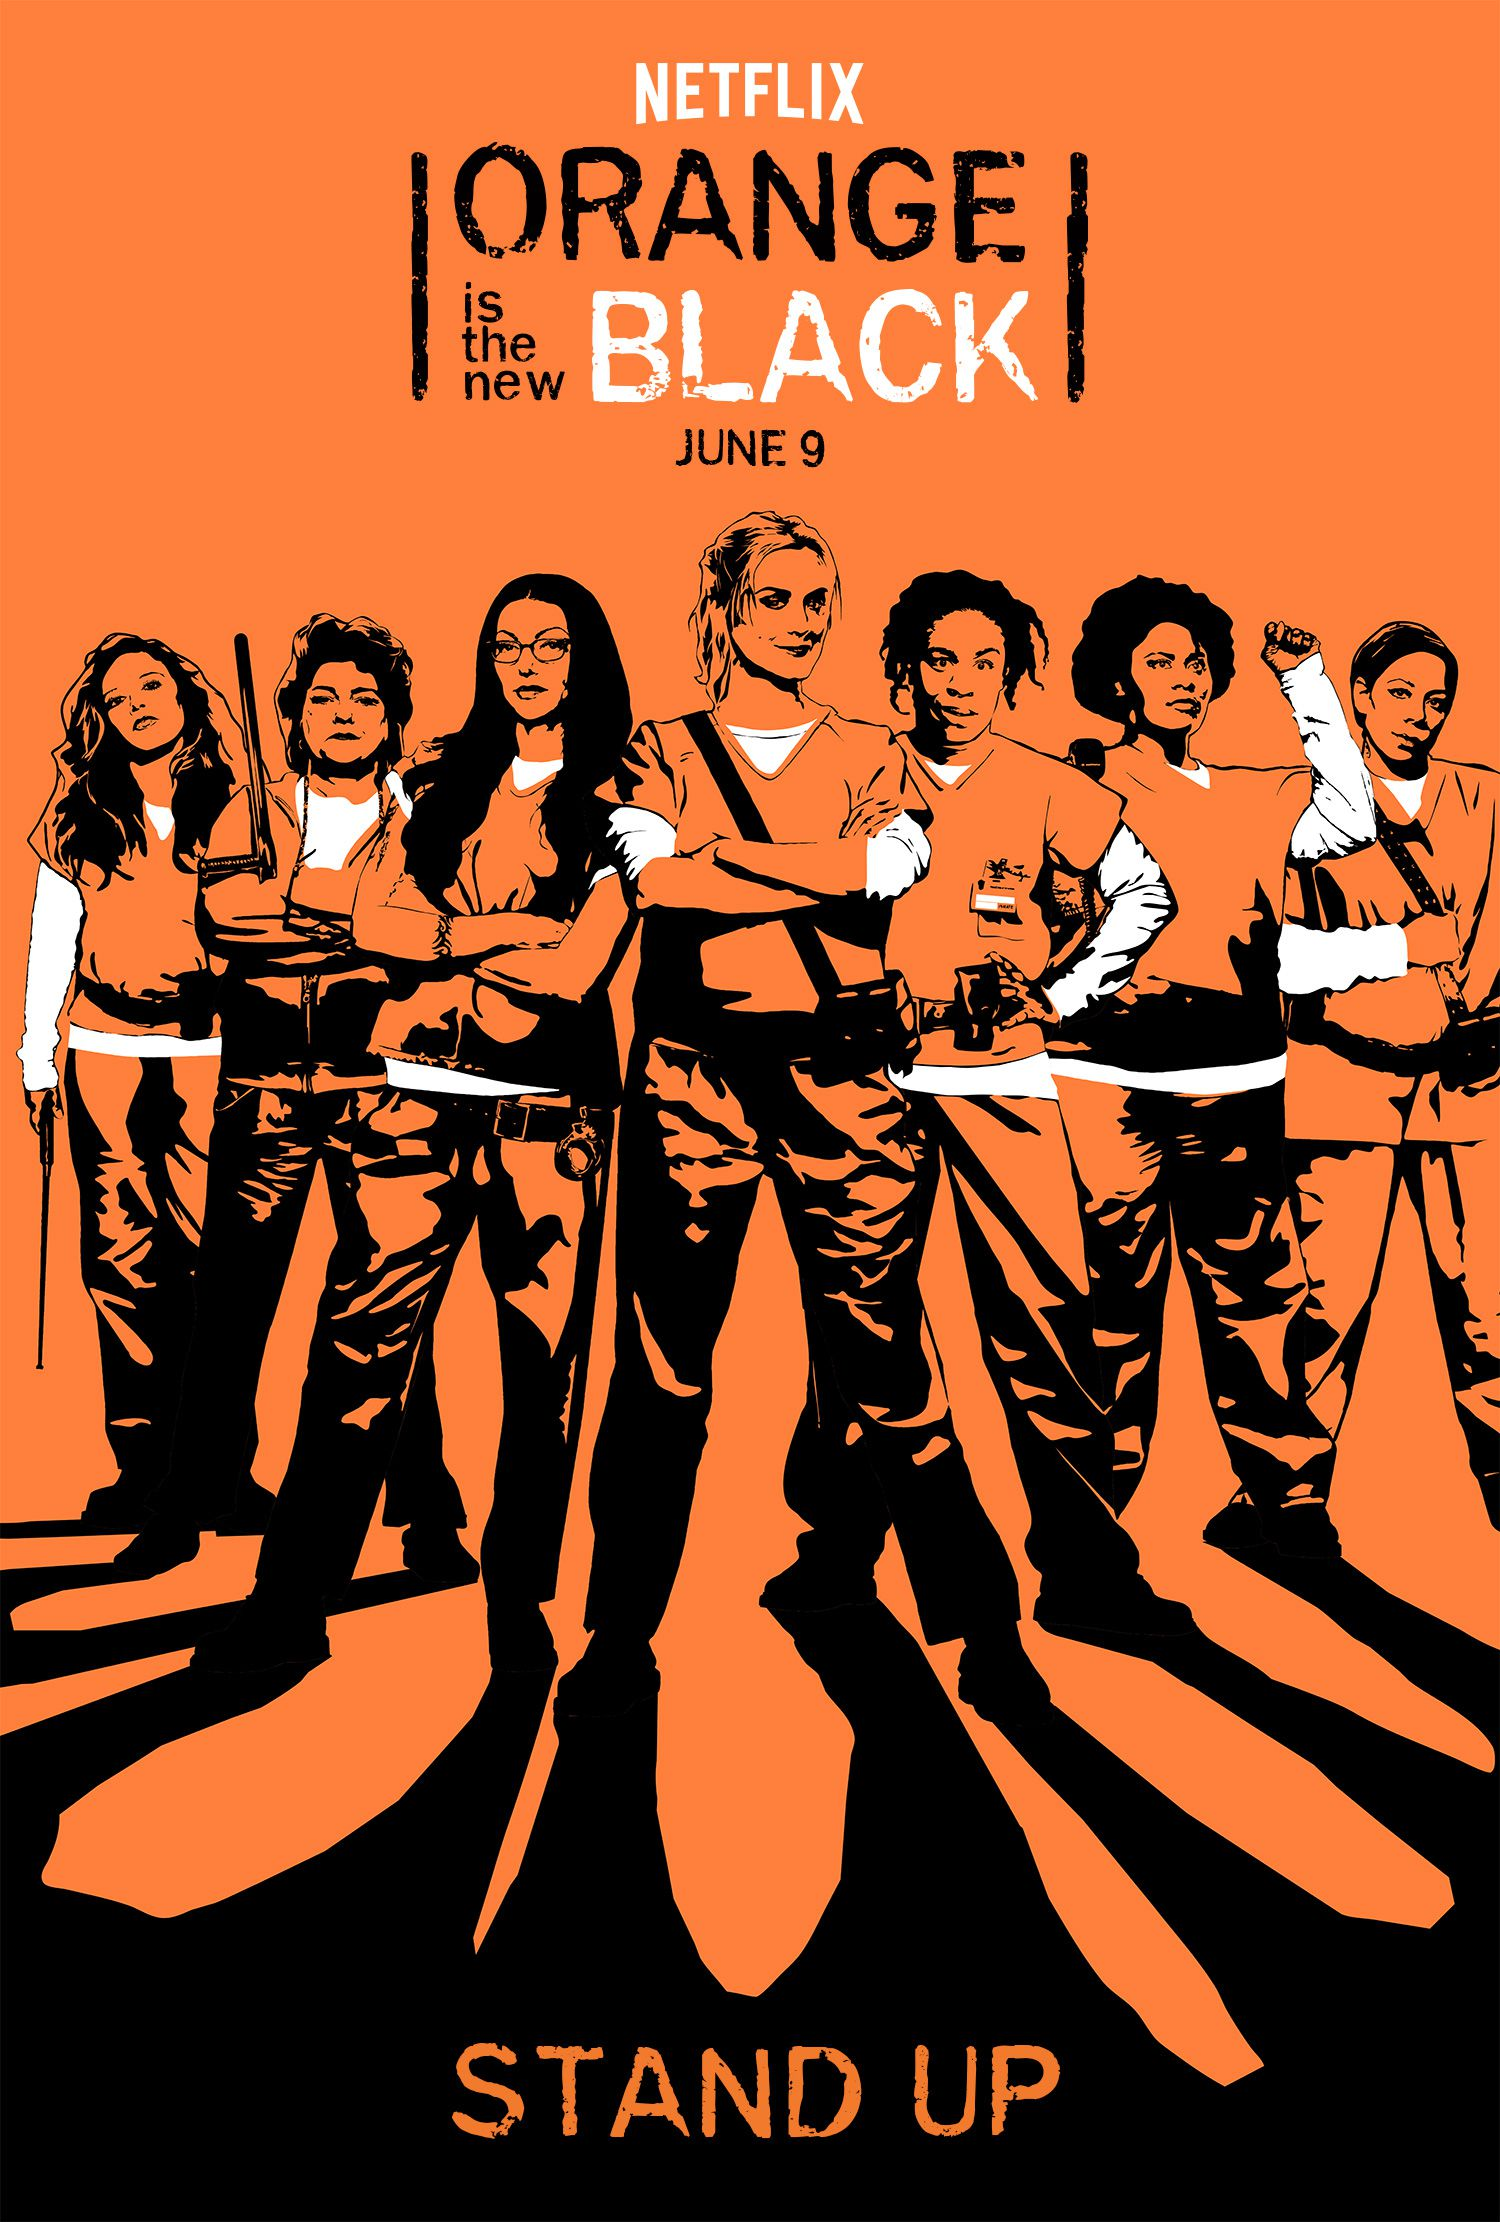 orange is the new black poster of all prisoners in orange suits